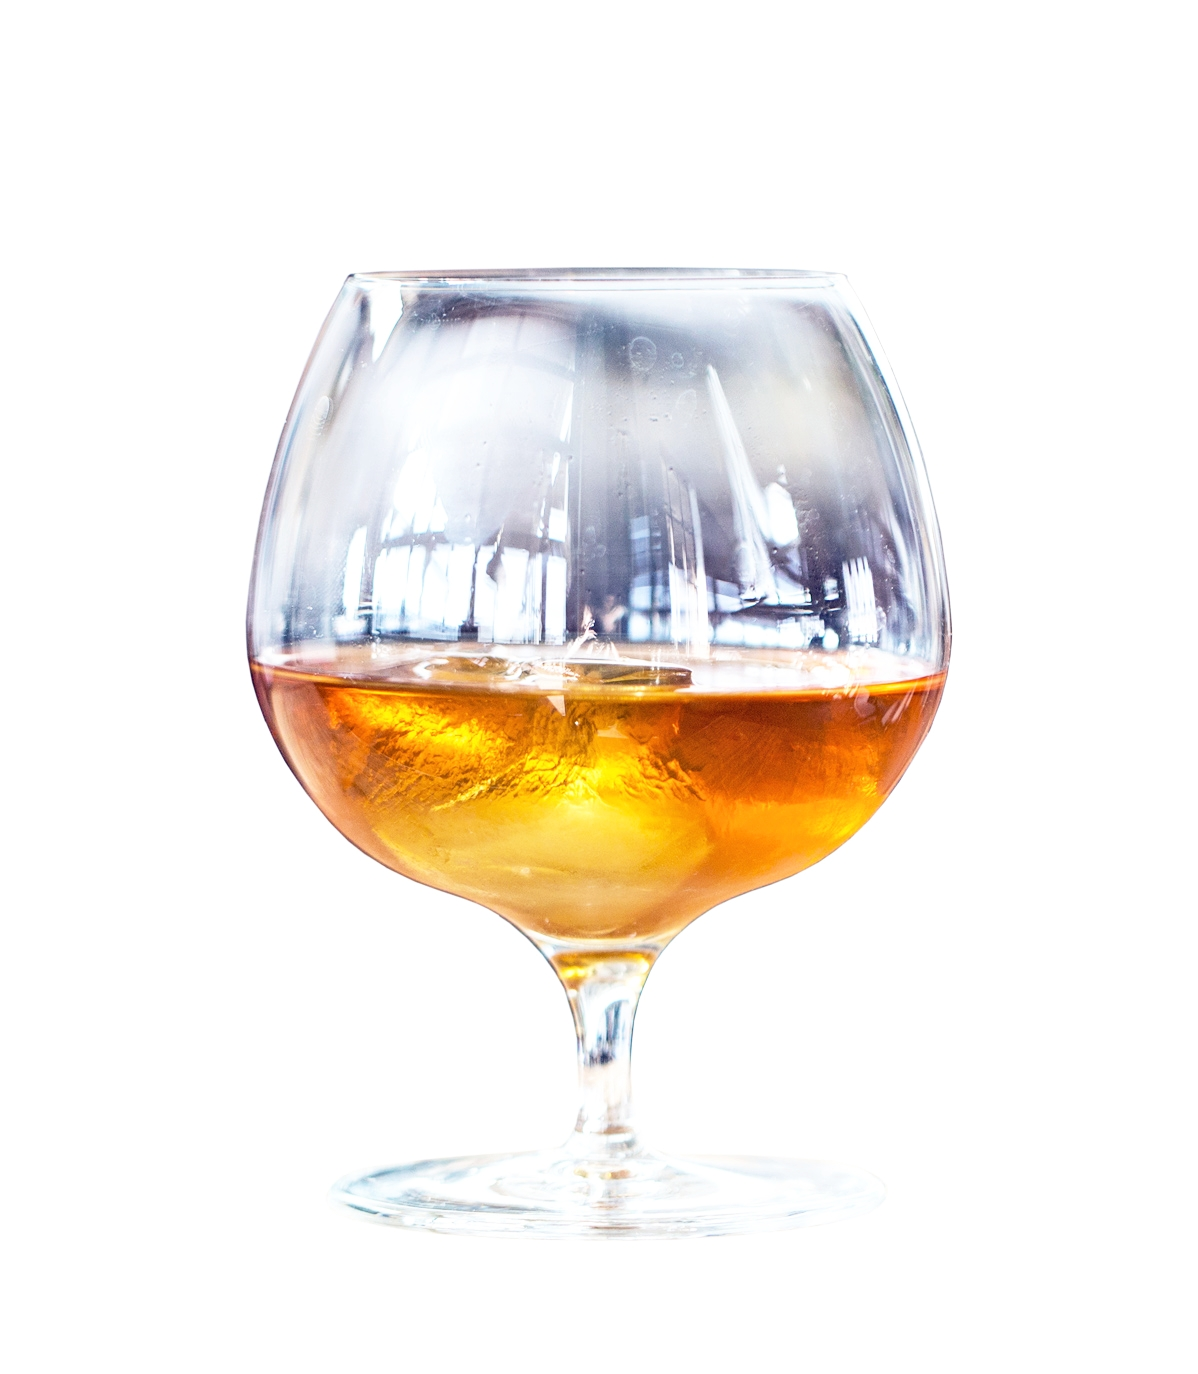 BANAN  60mL Norseman Pineapple Rum 20mL Sweet Vermouth 8mL Norseman Amaro Plantain 3mL Norseman Apricot Liqueur  Stir on ice and strain into a snifter glass. Float one large ice cube in glass.